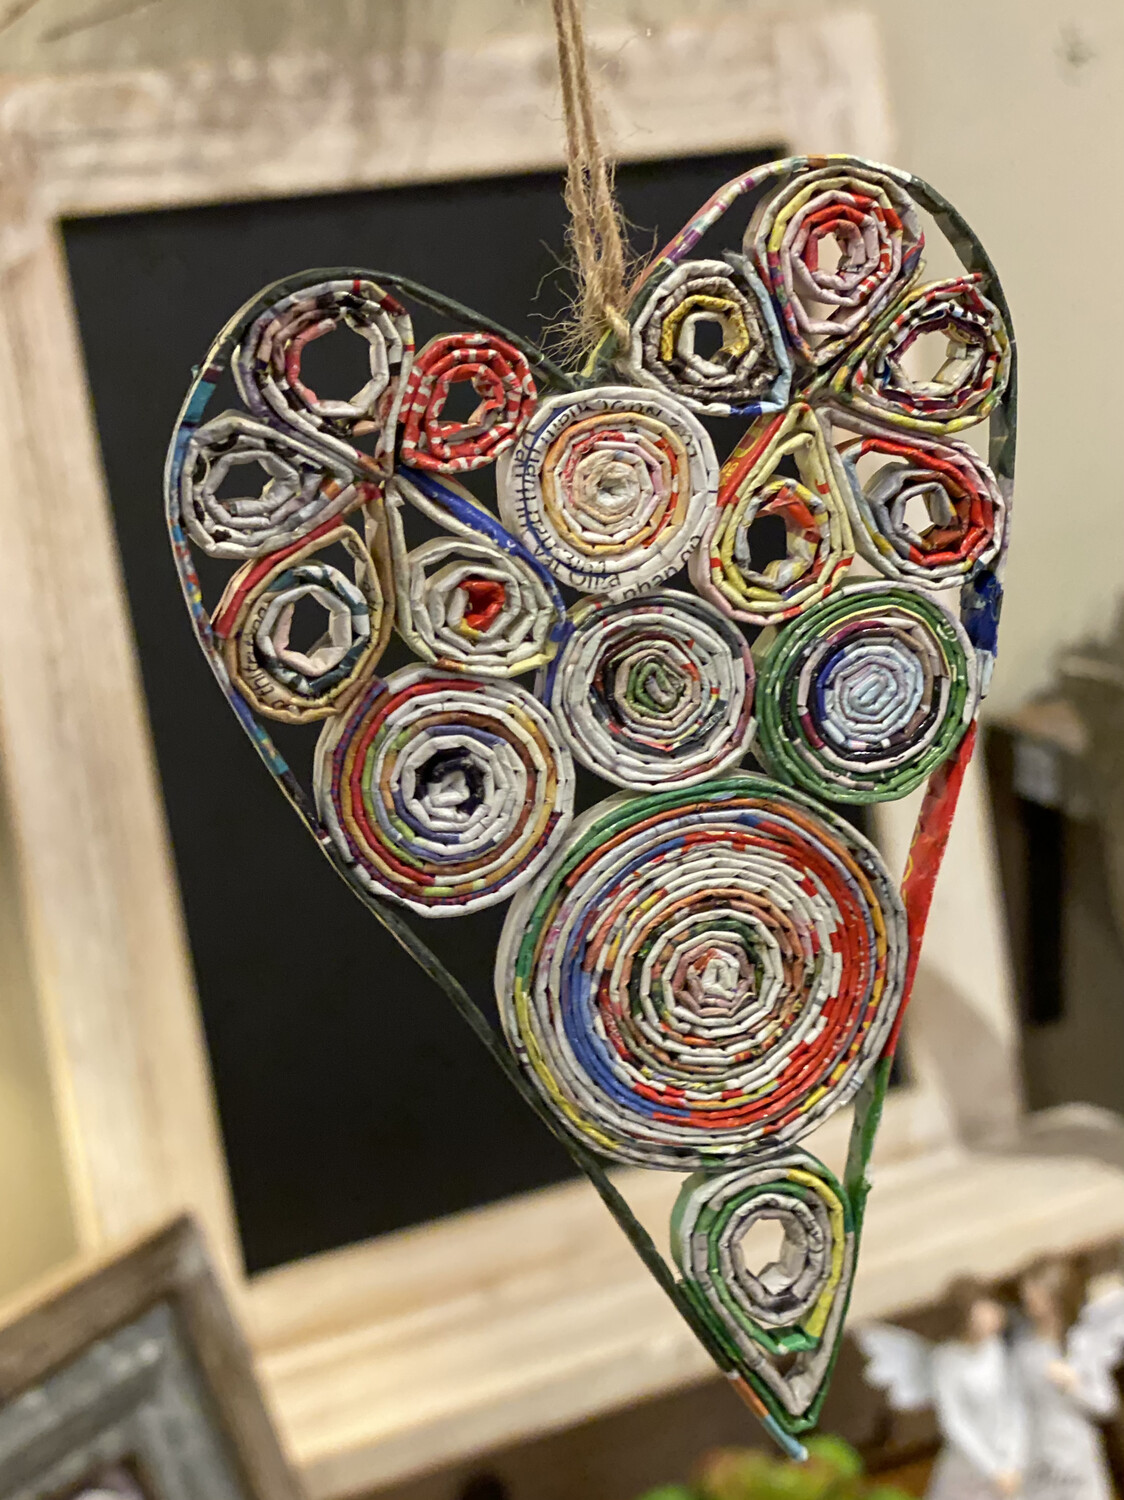 Heart Ornament Recycled Paper - 1213 - HEM